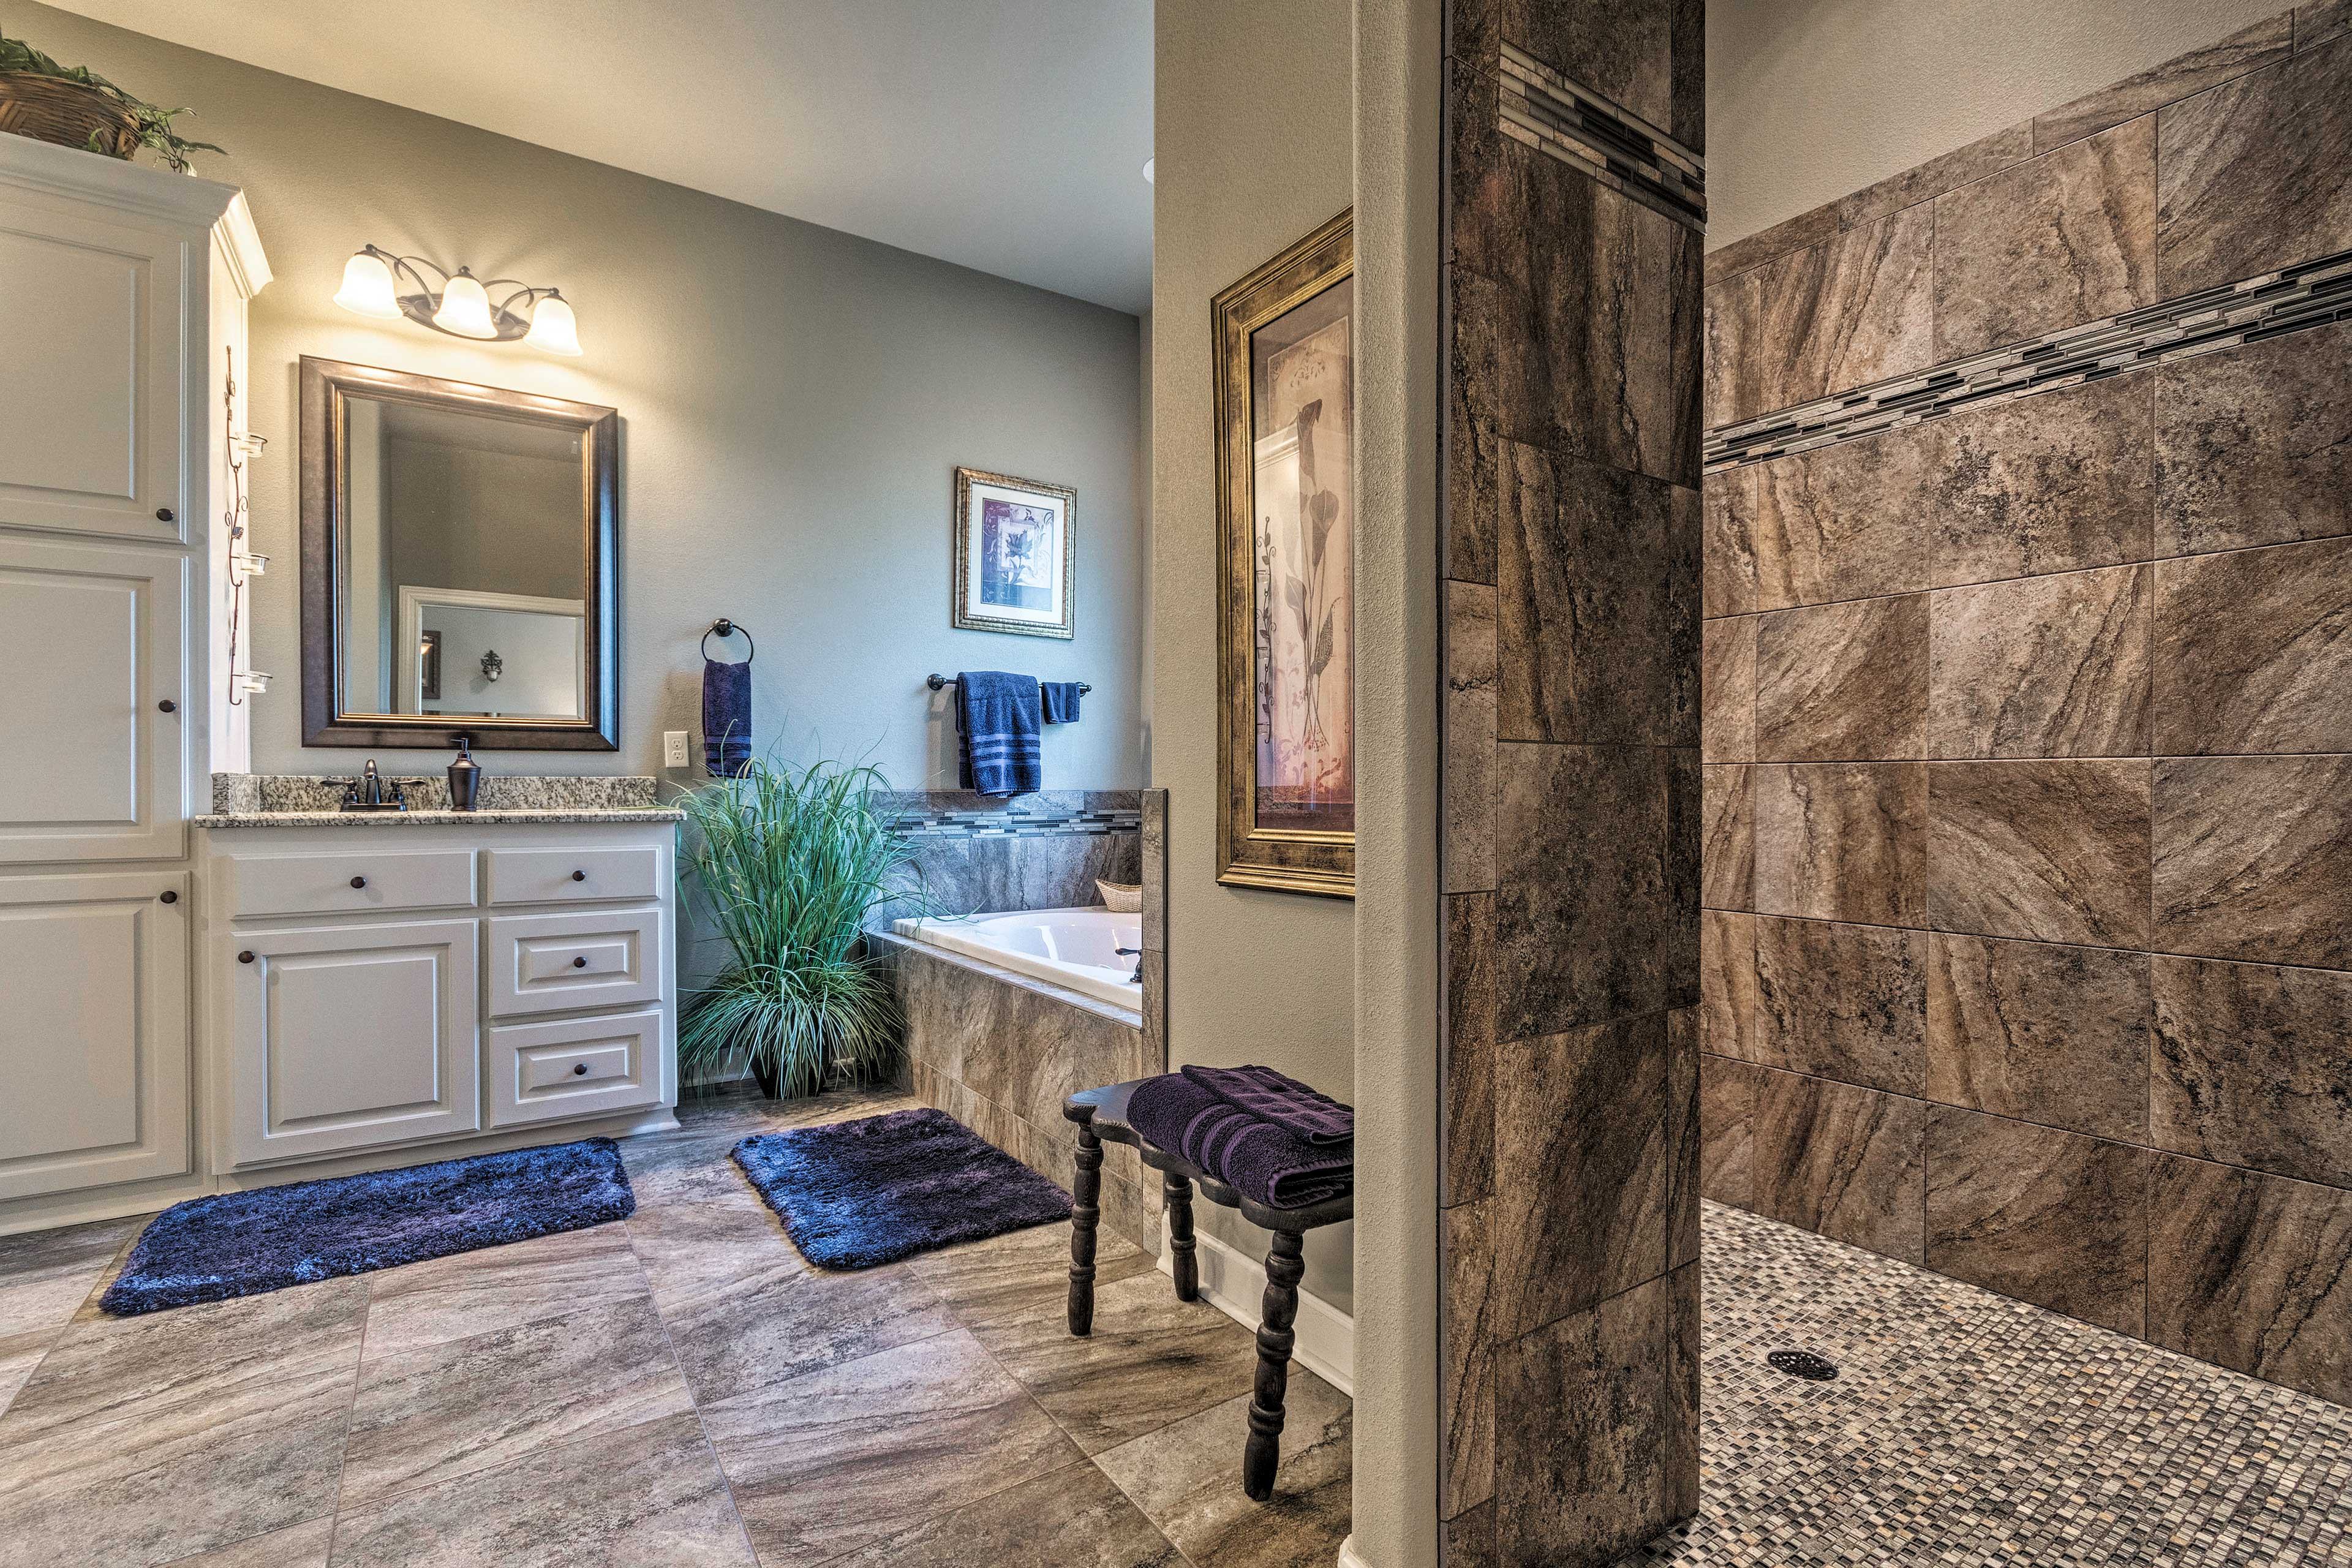 Rinse off the day in this breathtaking walk-in shower.